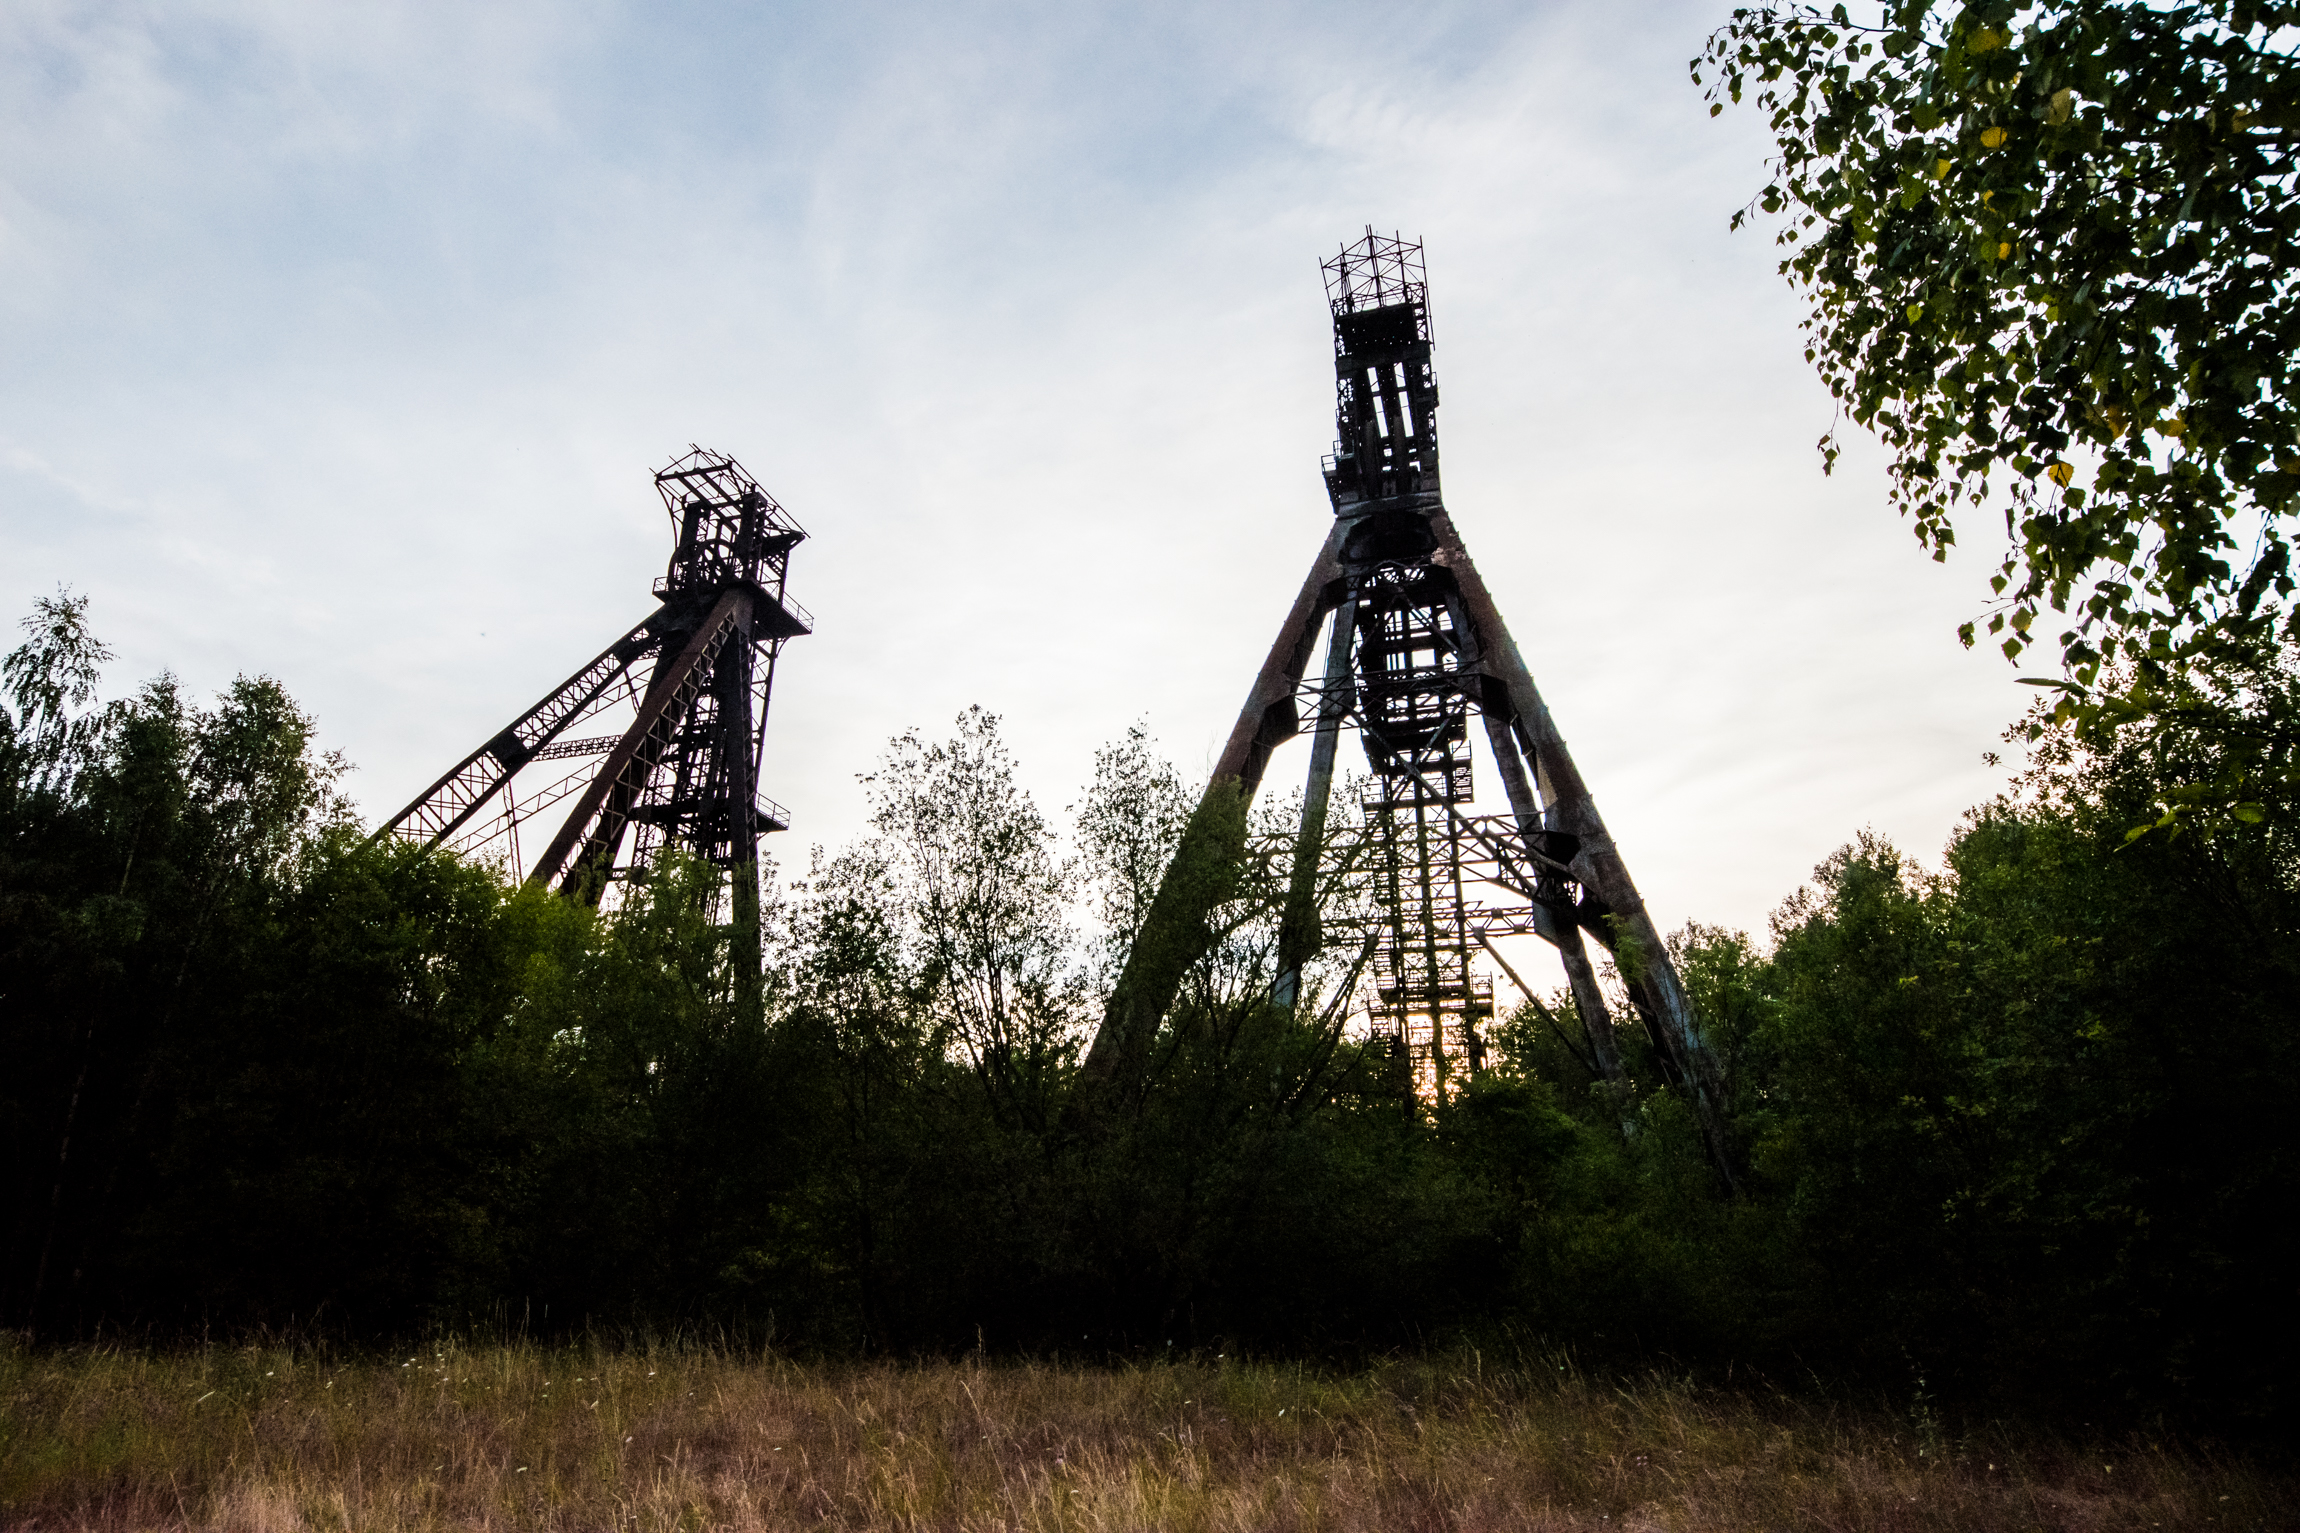 Rusting Mine Headstocks - Looming over a suburban street of rather run down houses are these 2 beastly Headstocks.Sadly the stairs had been chopped off at the bottom, so without climbing gear it was impossible to get up them.